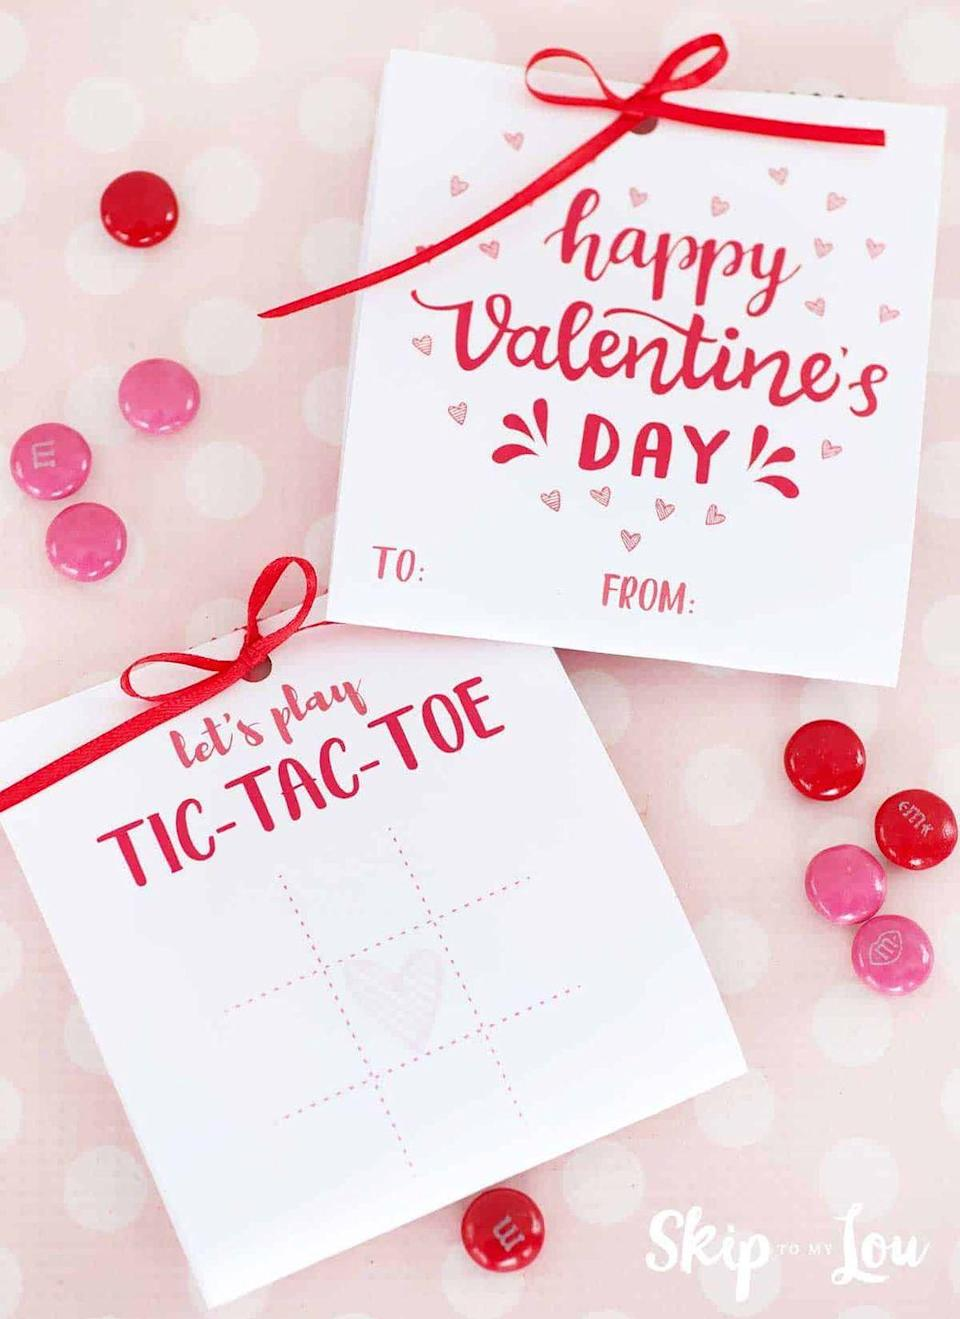 "<p>Challenge your significant other to a flirty game with these printable tic-tac-toe Valentines. Include a bag of pink and red M&M's to play with. </p><p><strong>See more at <a href=""https://www.skiptomylou.org/tic-tac-toe-valentines/"" rel=""nofollow noopener"" target=""_blank"" data-ylk=""slk:Skip to My Lou"" class=""link rapid-noclick-resp"">Skip to My Lou</a>.</strong></p><p><a class=""link rapid-noclick-resp"" href=""https://go.redirectingat.com?id=74968X1596630&url=https%3A%2F%2Fwww.walmart.com%2Fip%2FM-M-s-Milk-Chocolate-Candies-Valentines-Day-Candy-Cupid-s-Mix-10-Ounces%2F876852509&sref=https%3A%2F%2Fwww.thepioneerwoman.com%2Fhome-lifestyle%2Fcrafts-diy%2Fg35084525%2Fdiy-valentines-day-cards%2F"" rel=""nofollow noopener"" target=""_blank"" data-ylk=""slk:SHOP VALENTINE'S DAY M&M'S"">SHOP VALENTINE'S DAY M&M'S</a></p>"